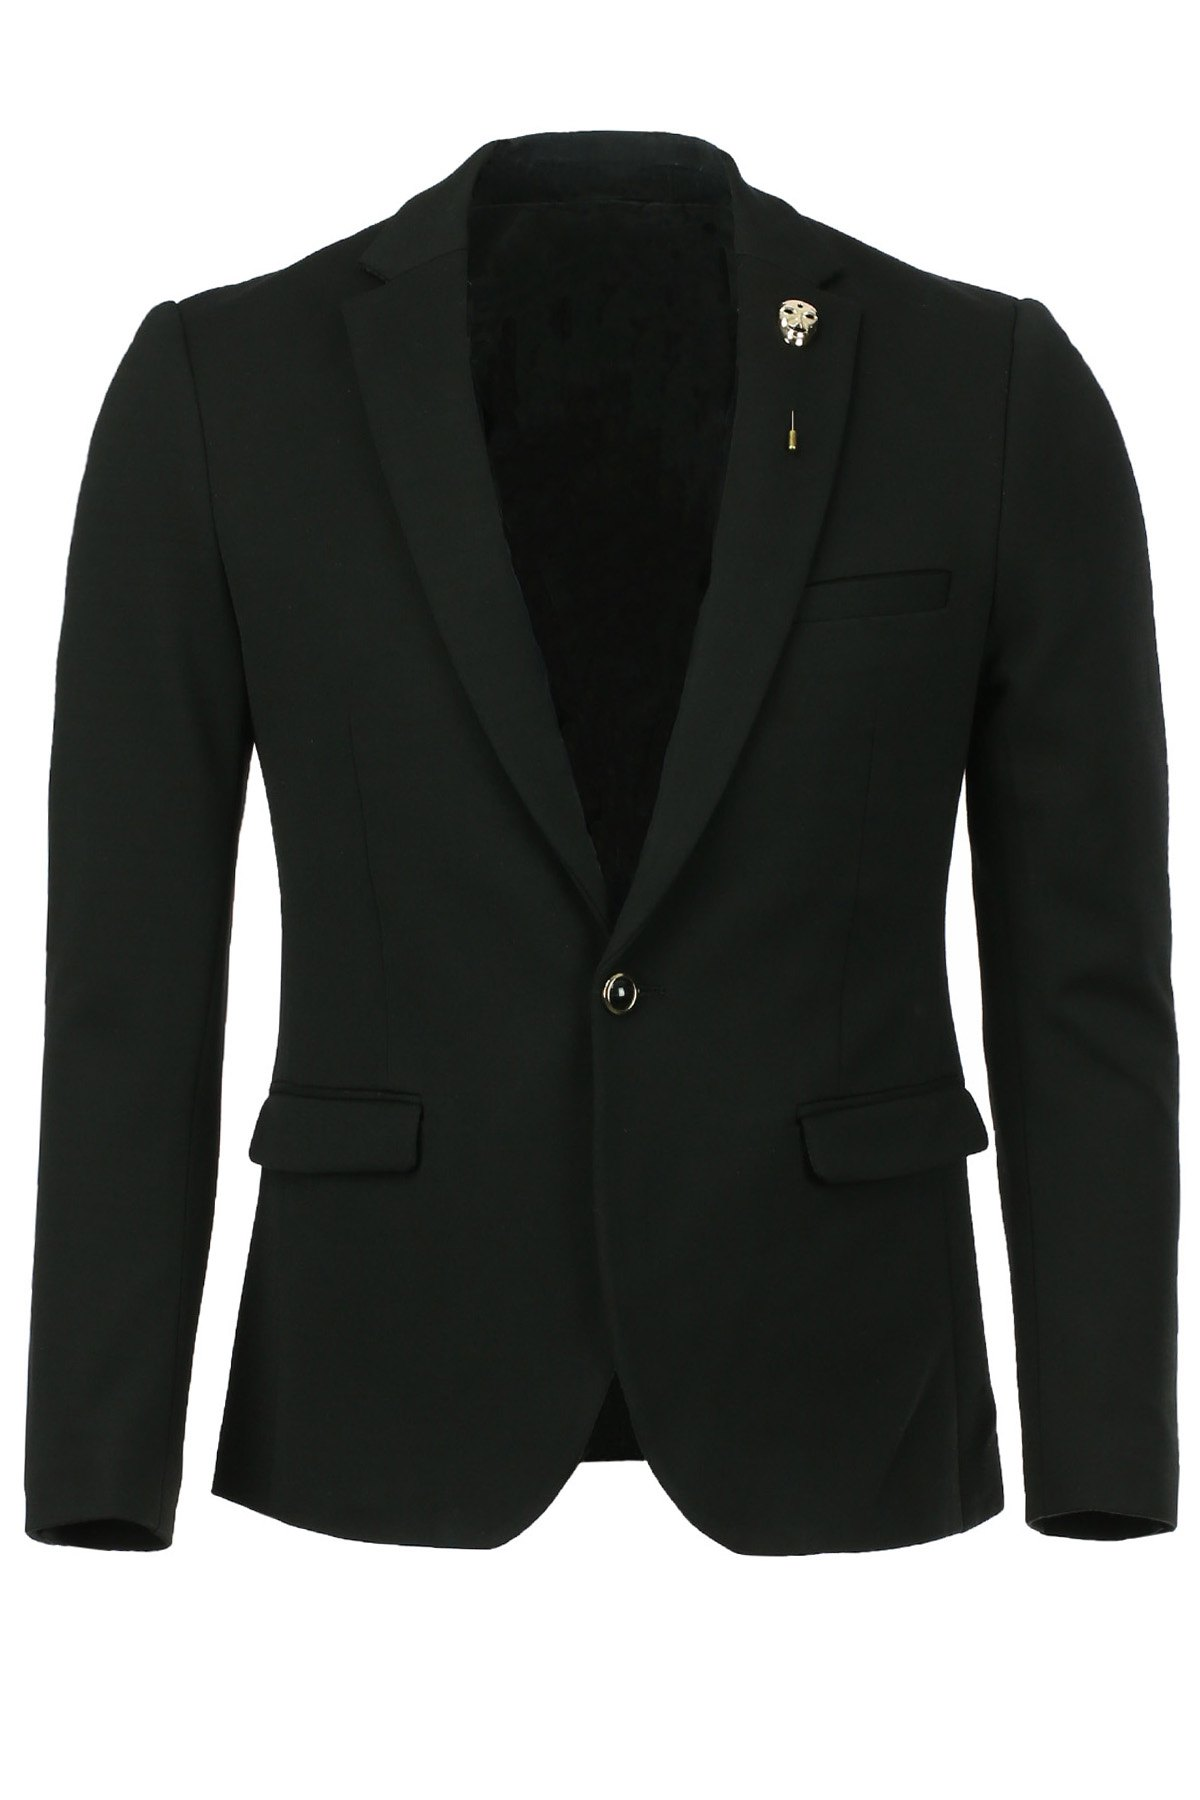 Laconic Stereo Patch Pocket Slimming Lapel Long Sleeves Men's Single-Breasted Blazer